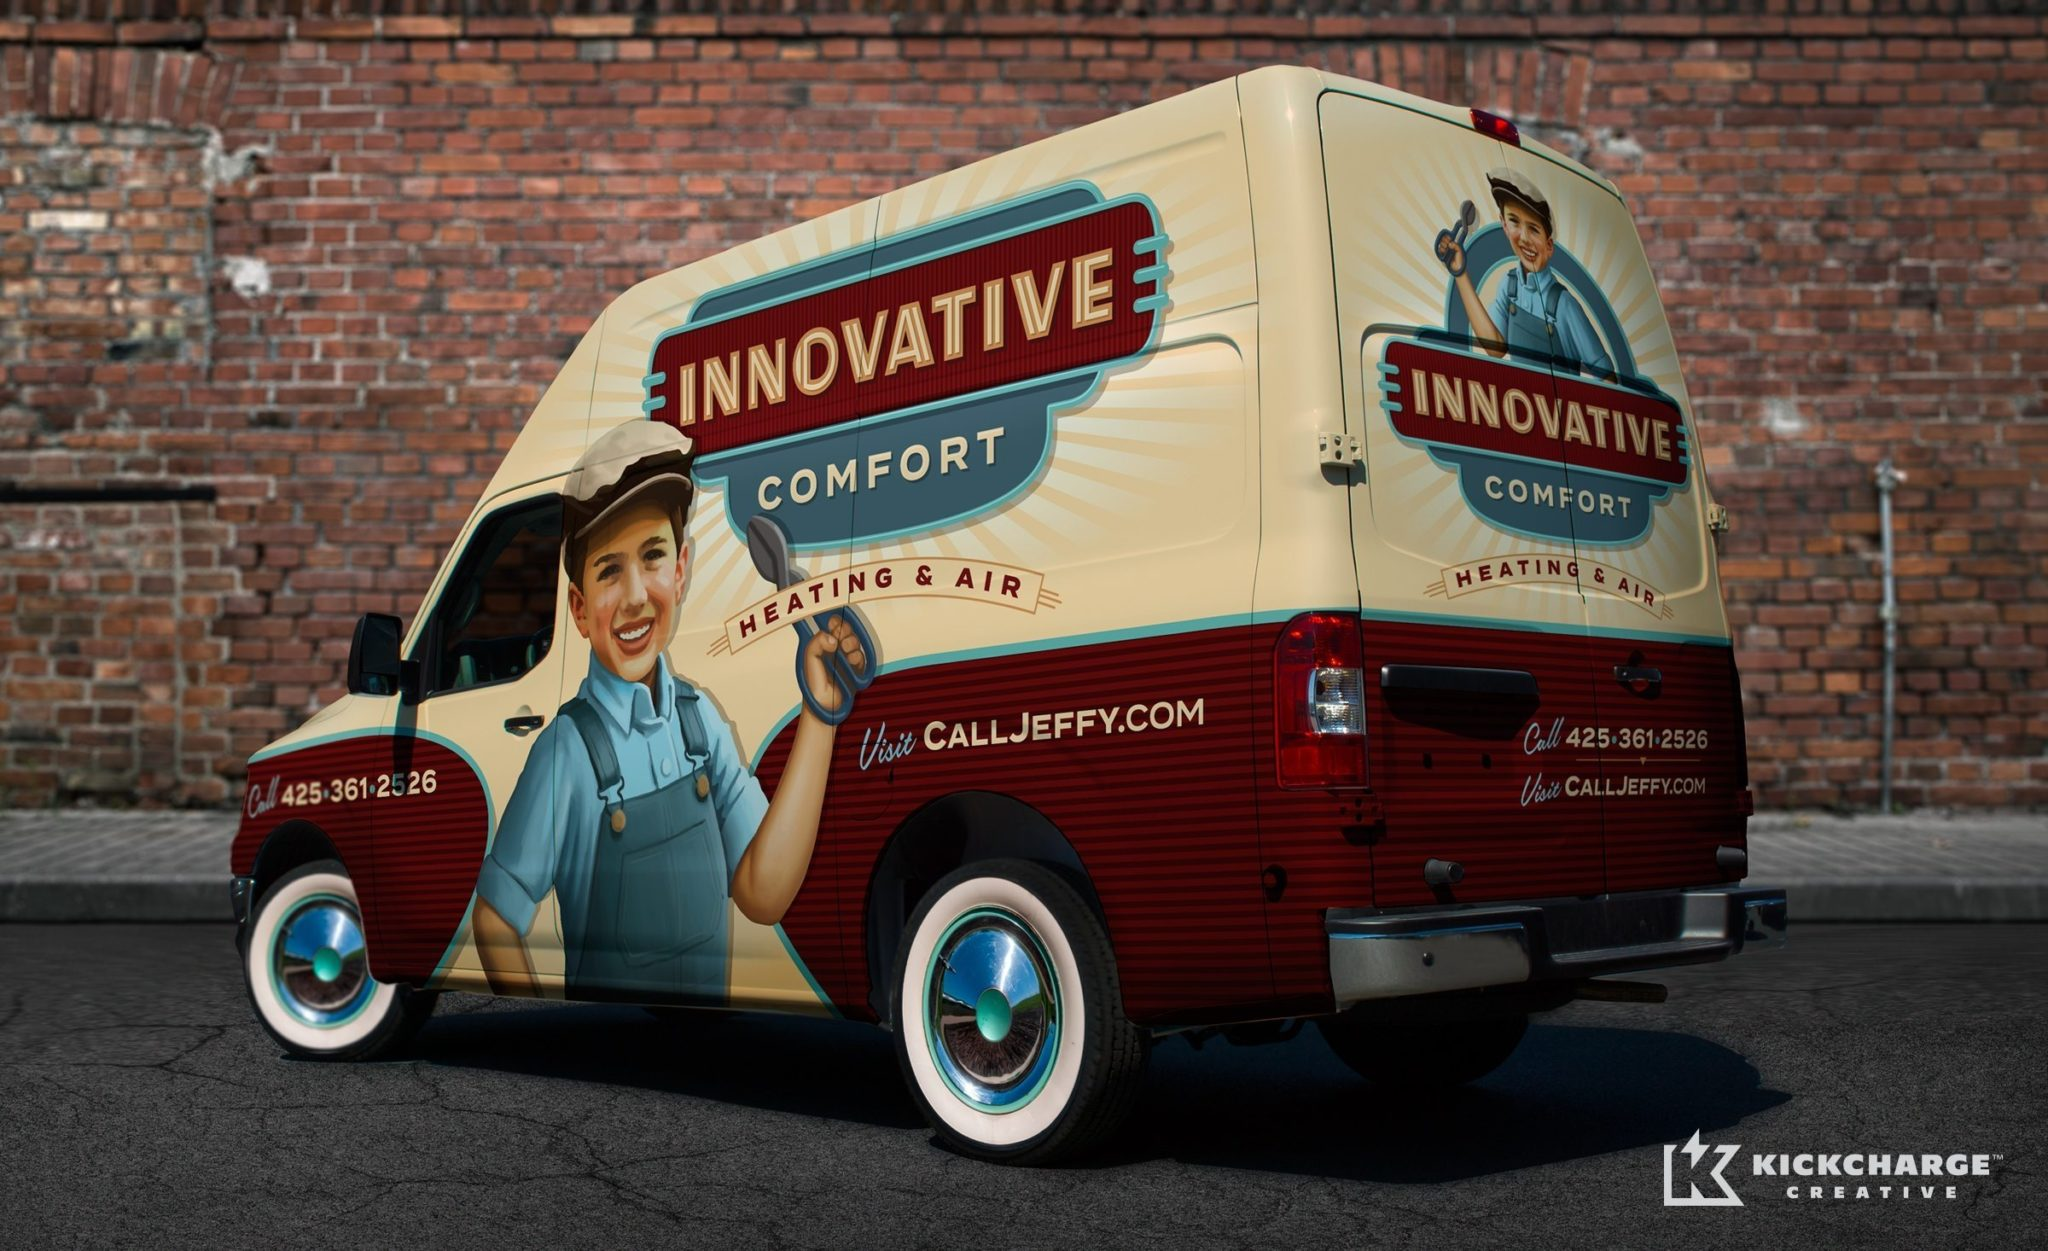 For their vehicle wrap, Innovative Comfort Heating & Air taps into the power of nostalgia to stand out in a saturated market.